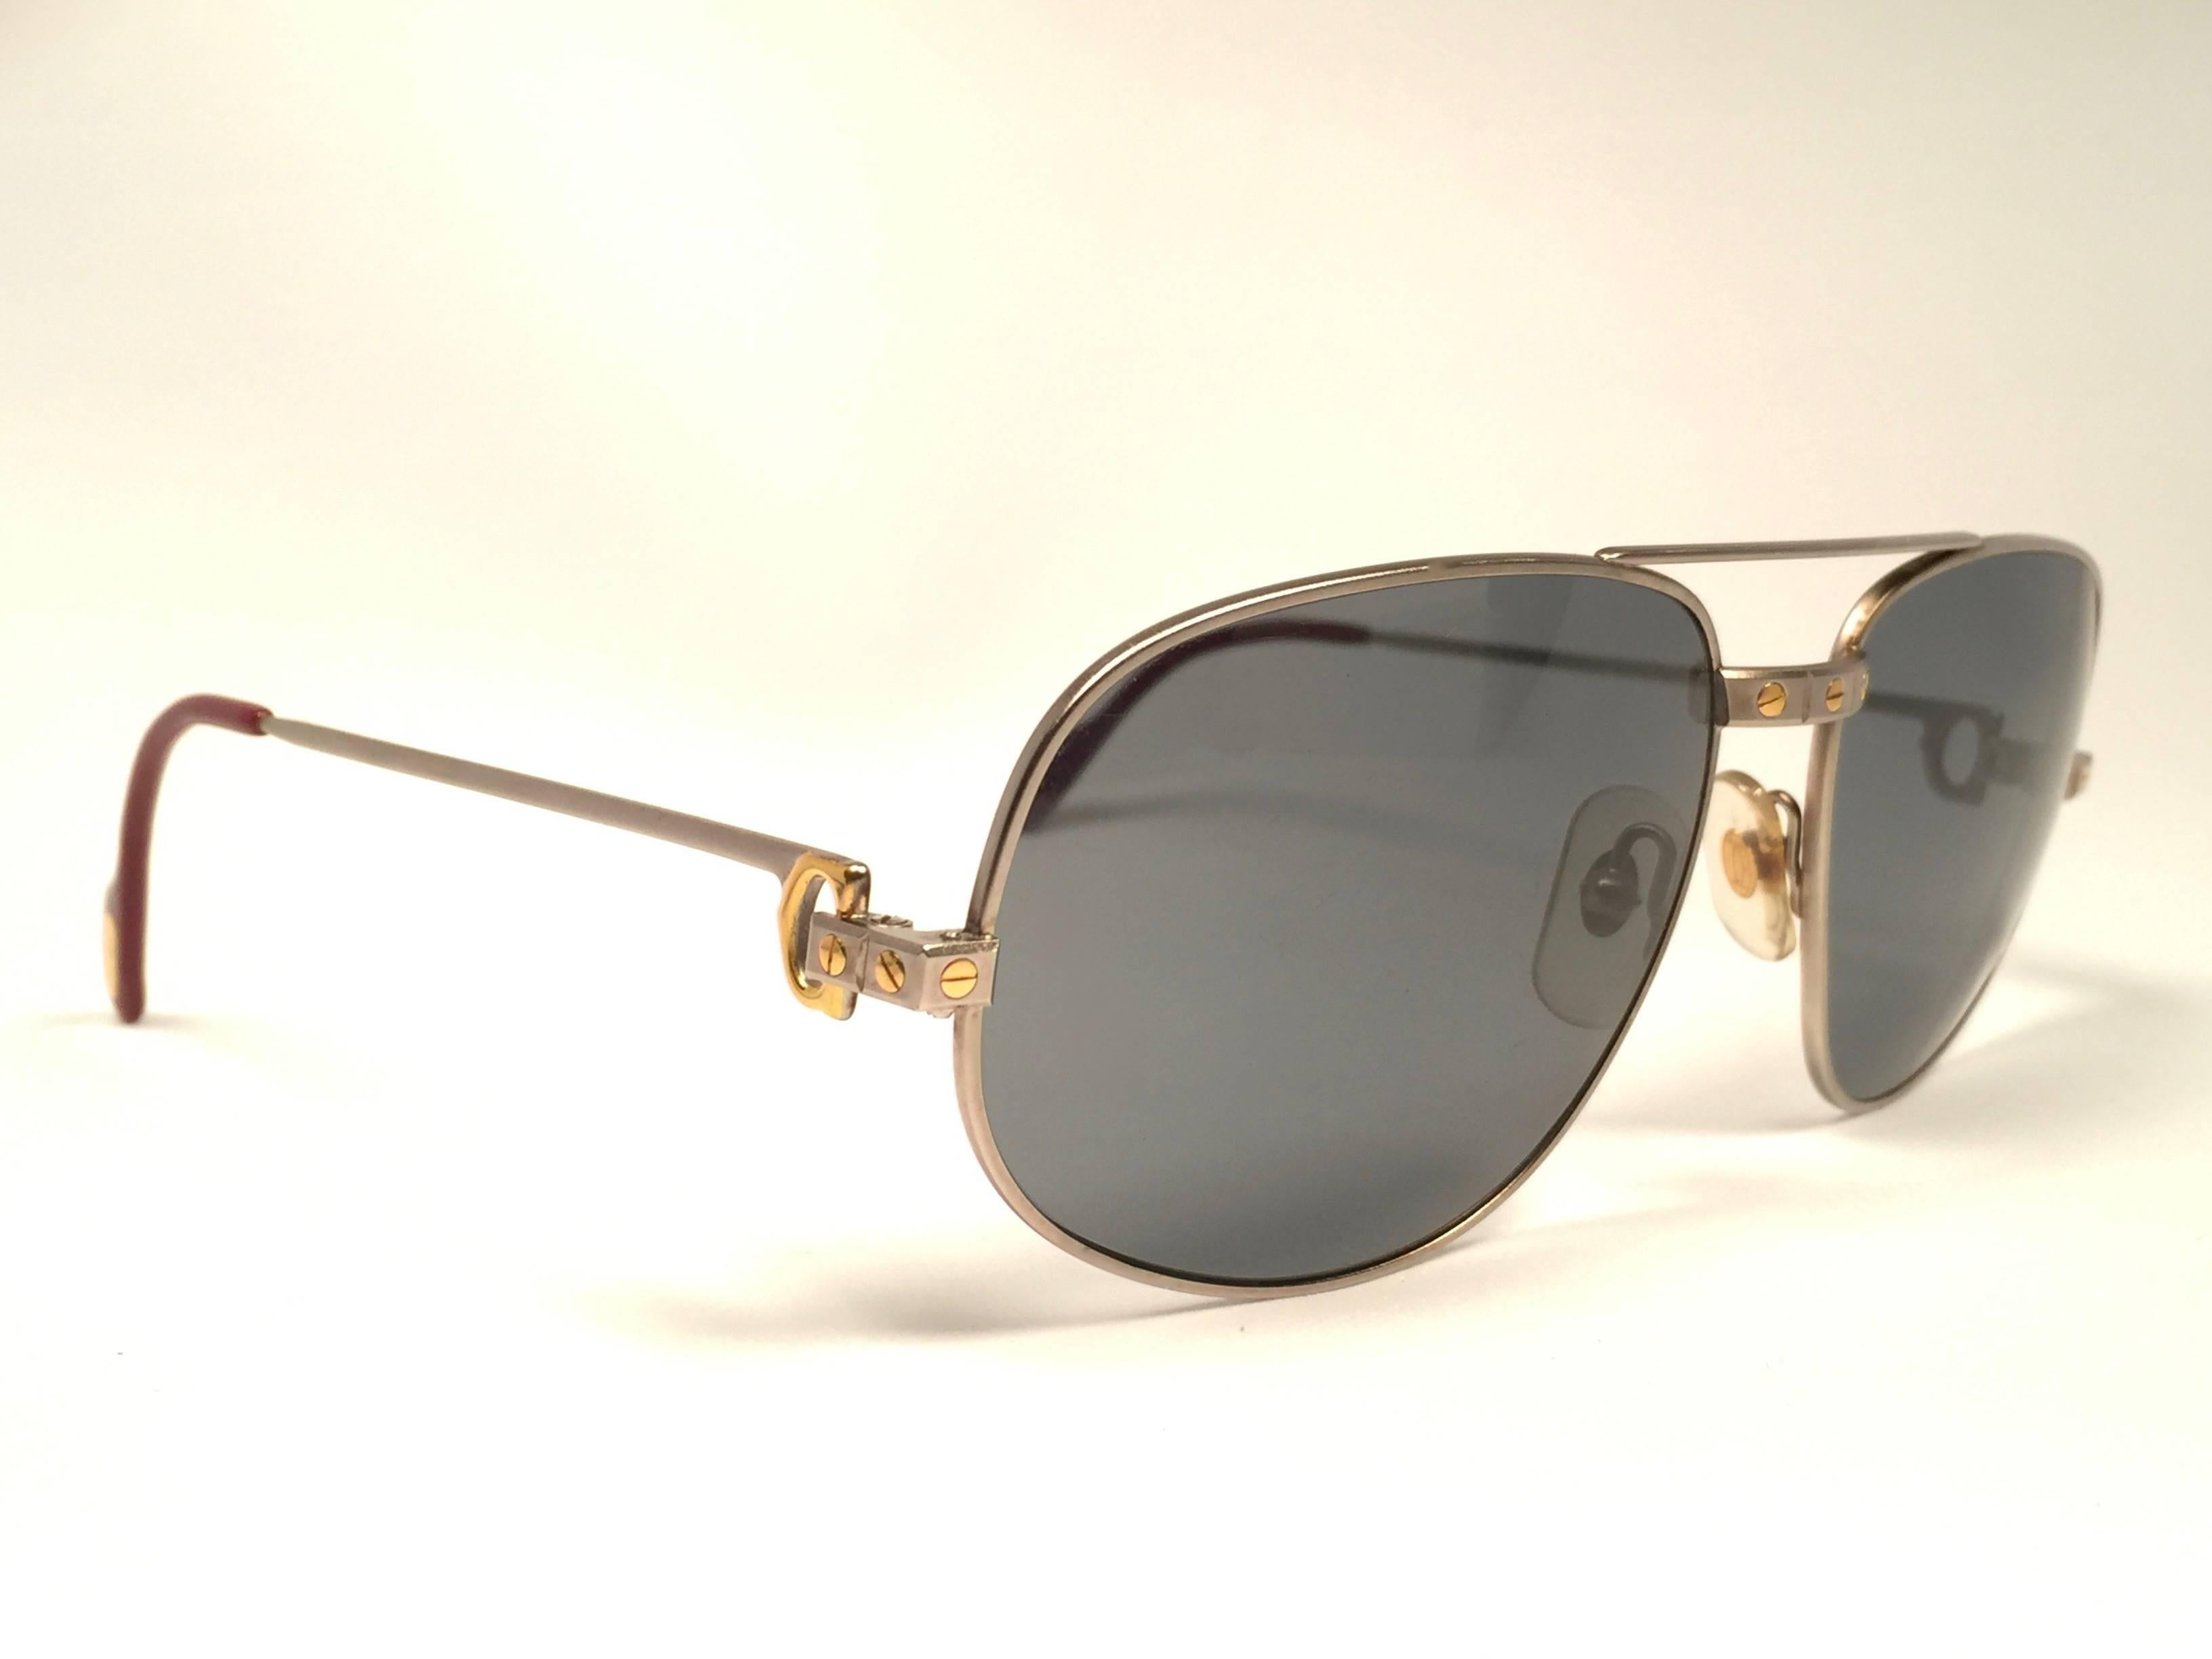 522520a6716d Cartier Aviator Santos Sunglasses - Restaurant and Palinka Bar